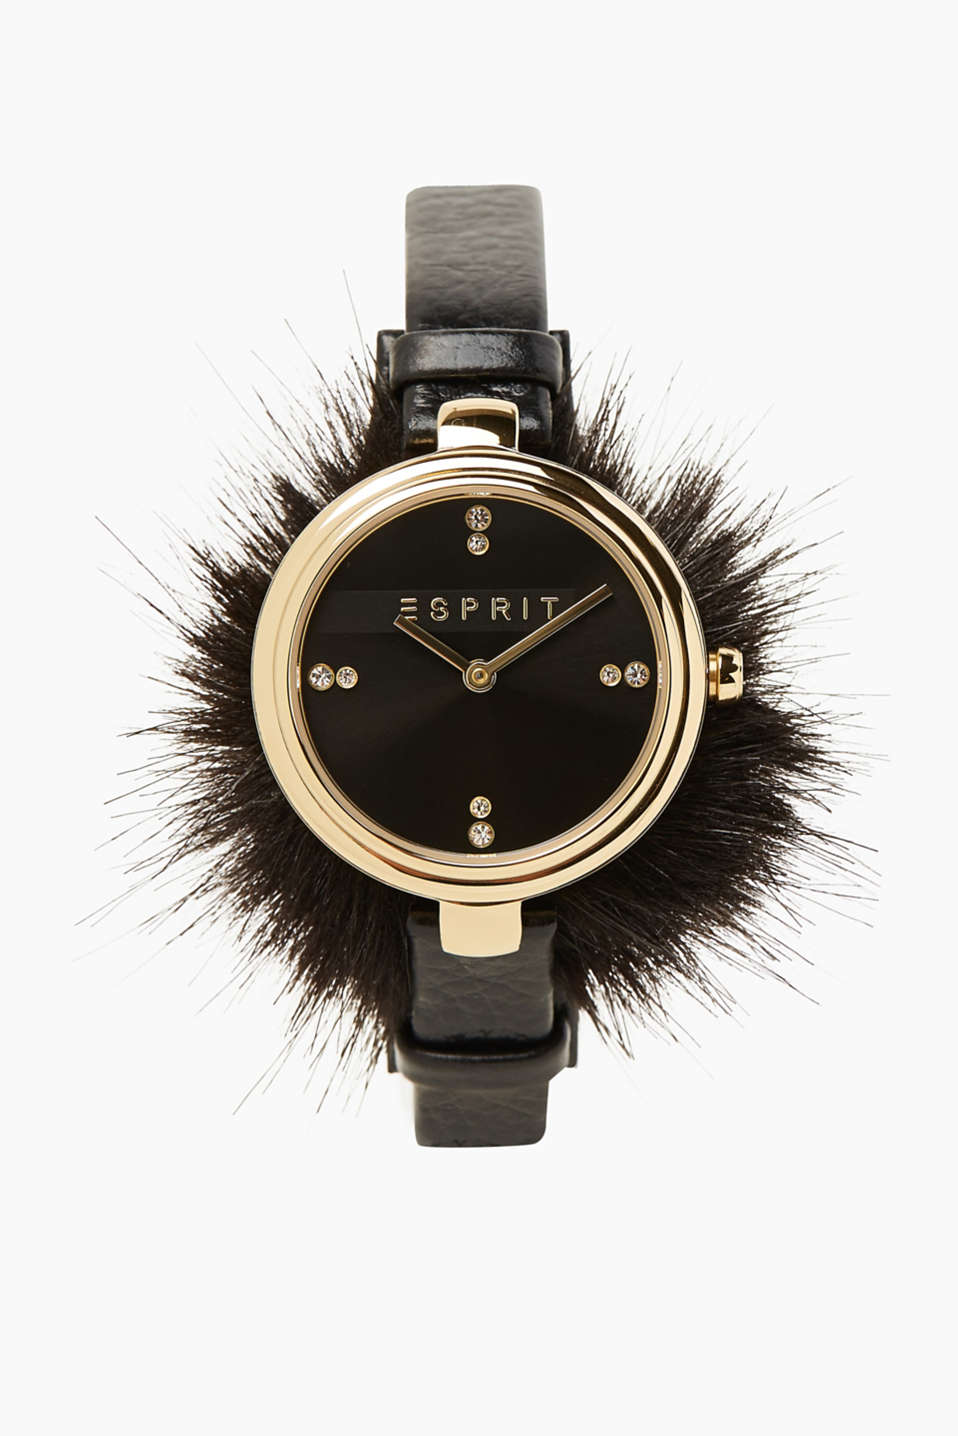 Simple and eye-catching. The minimalist design and fake fur trim make this watch one of a kind!